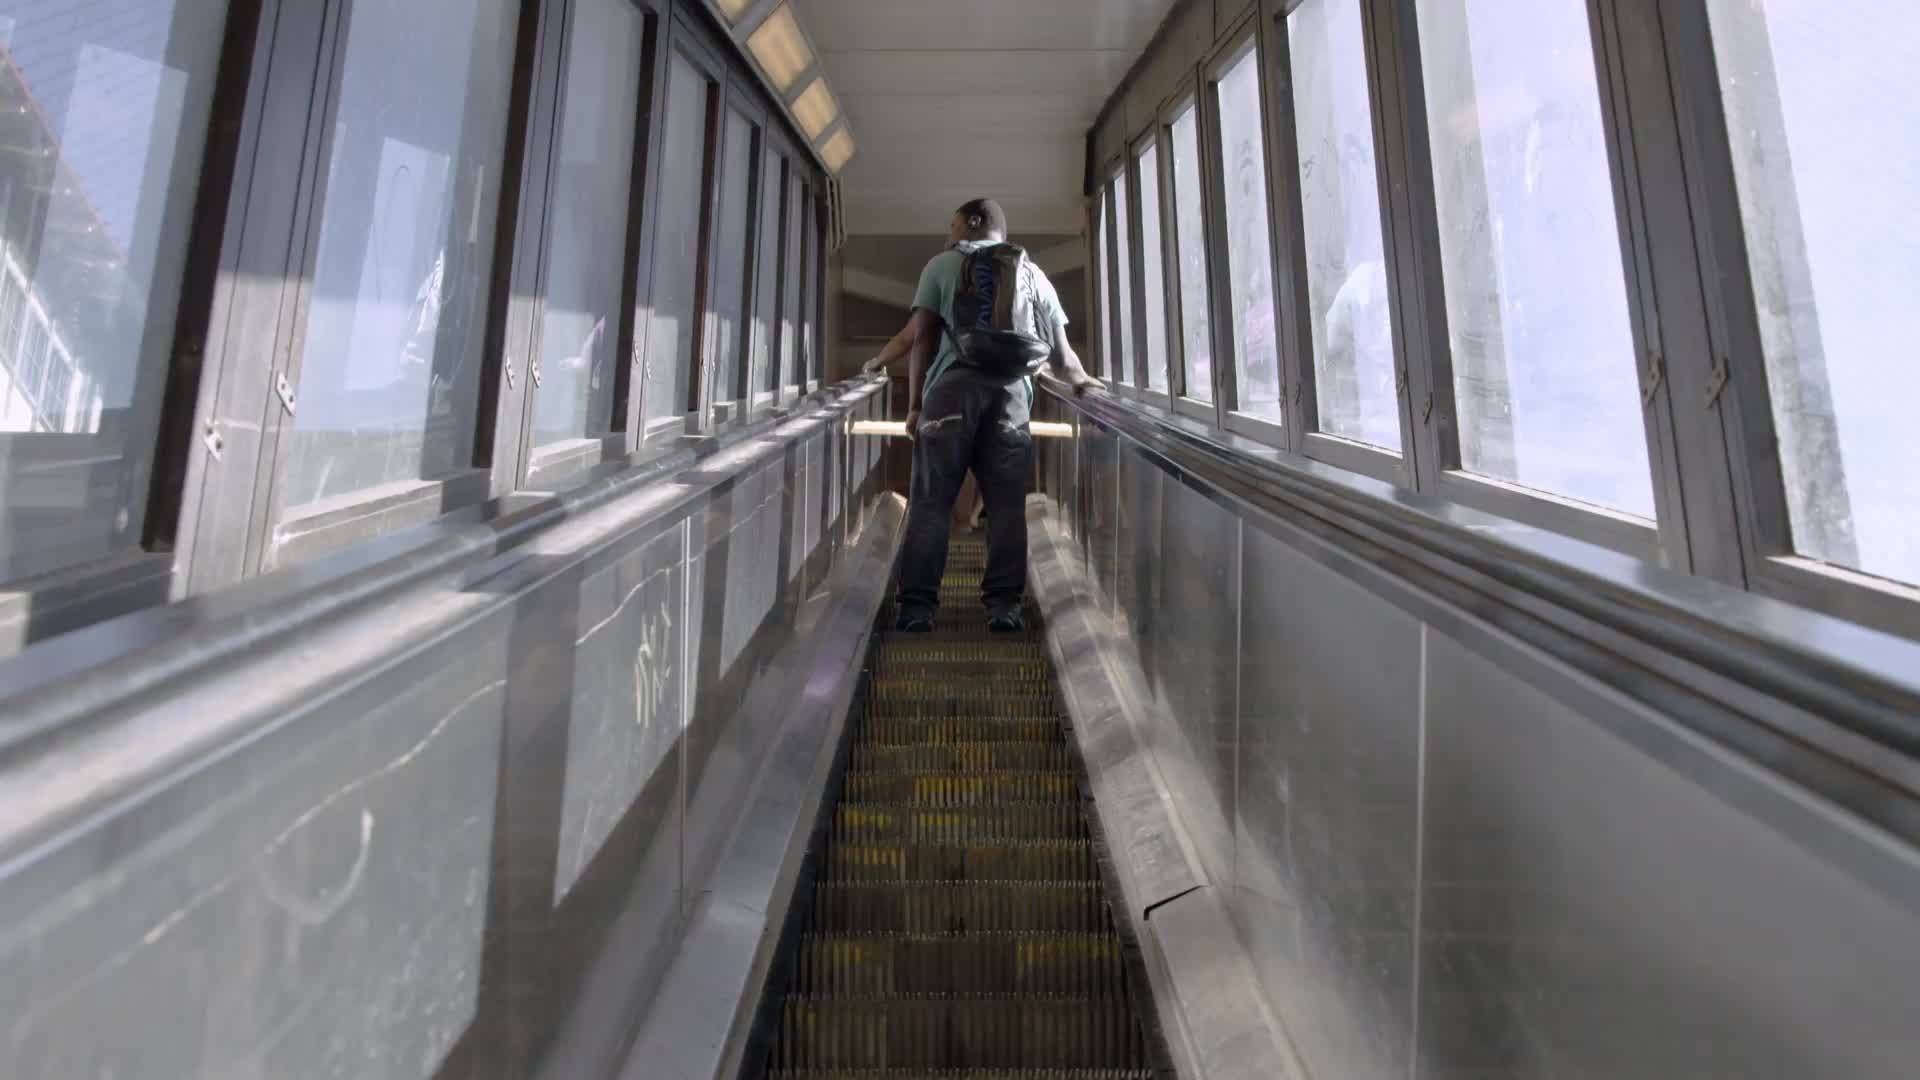 up escalator in 125th street subway station in Harlem - kid with backpack riding escalator going up